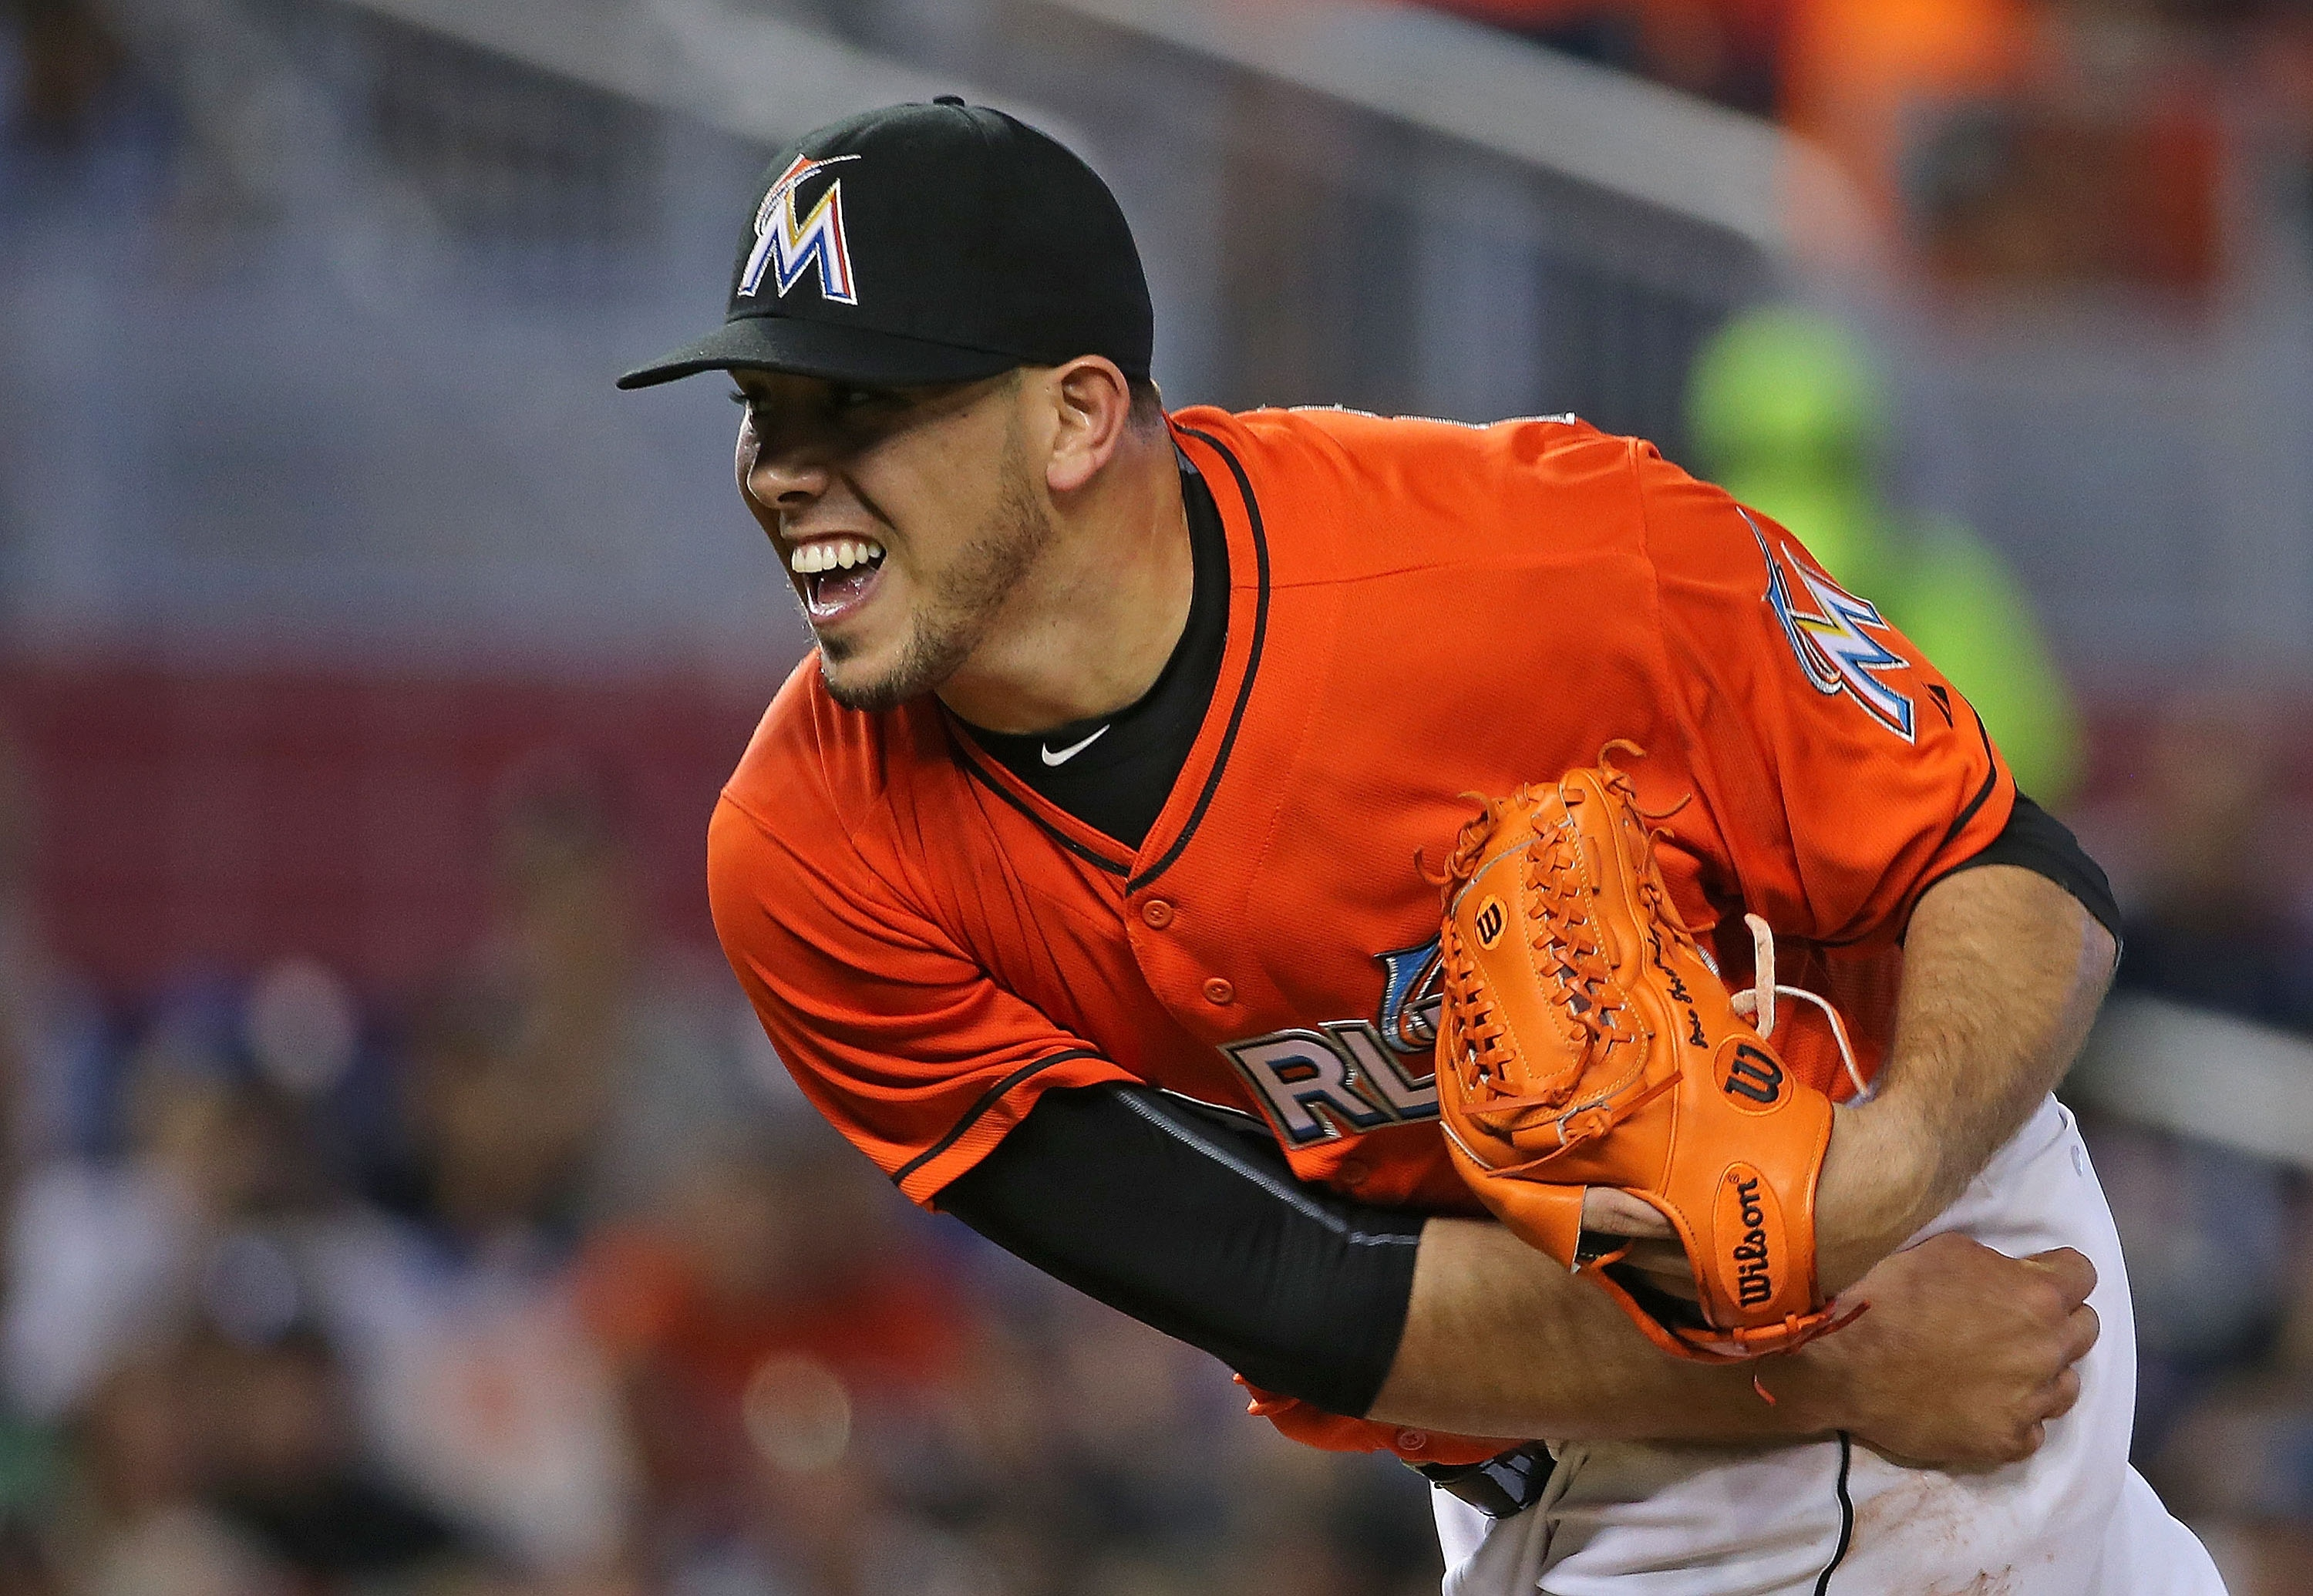 Something to smile about: the return of Jose Fernandez. (Getty)